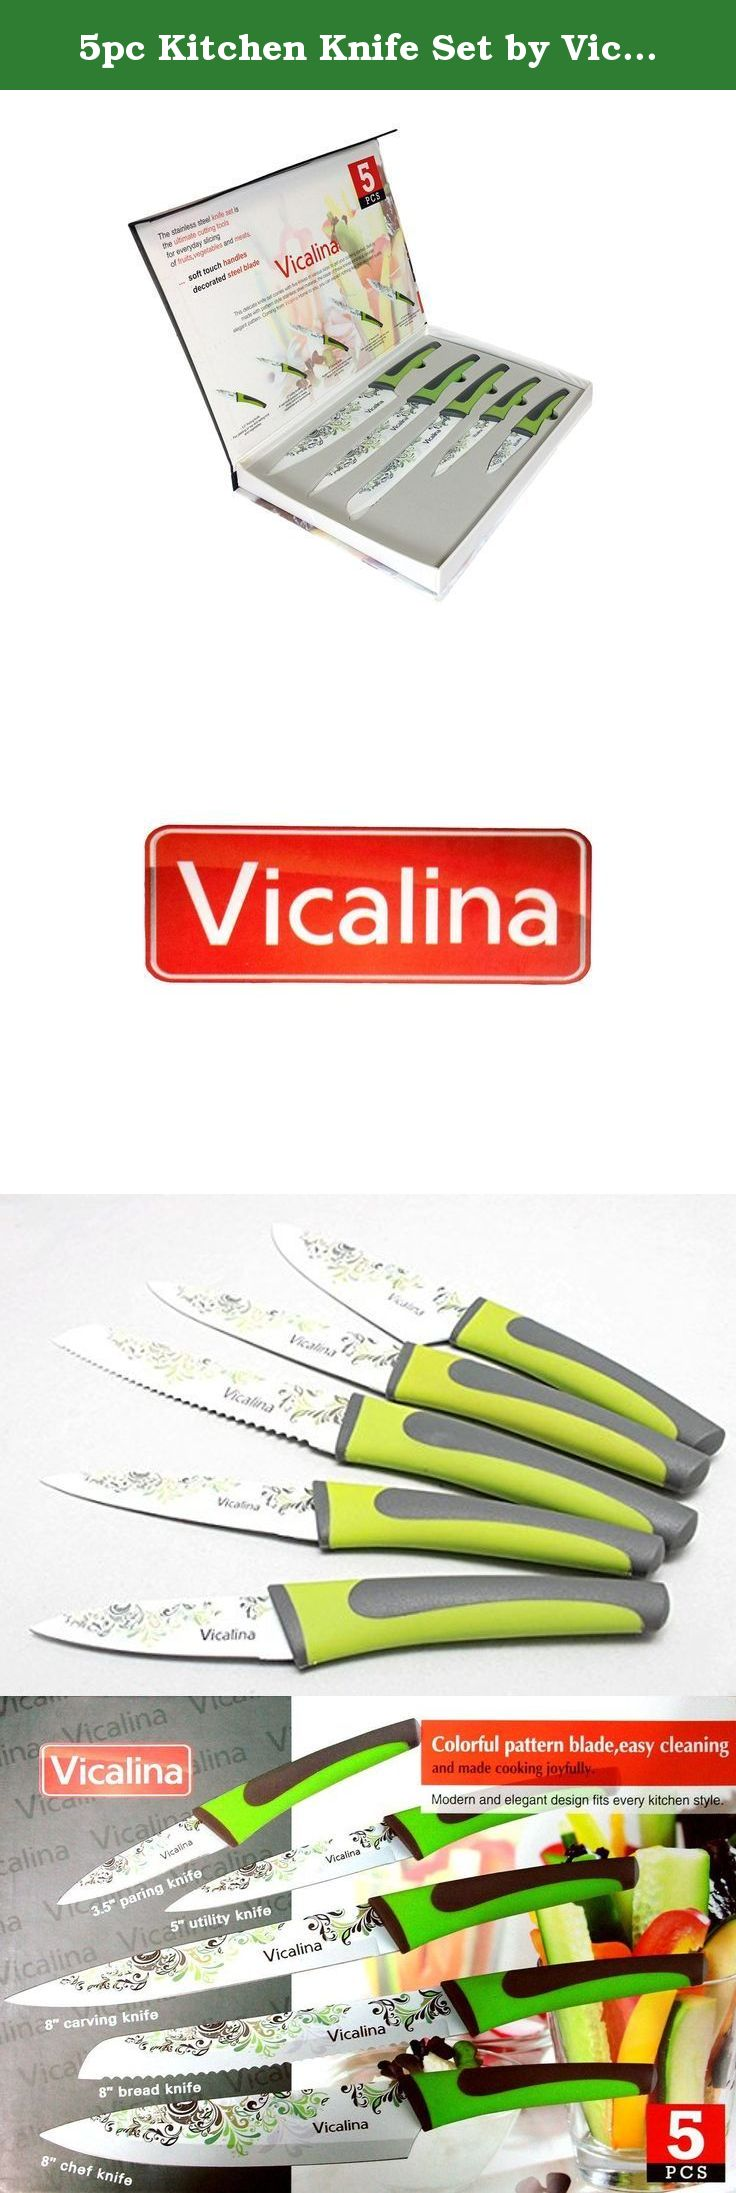 5pc kitchen knife set by vicalina elegant and functional 5 piece